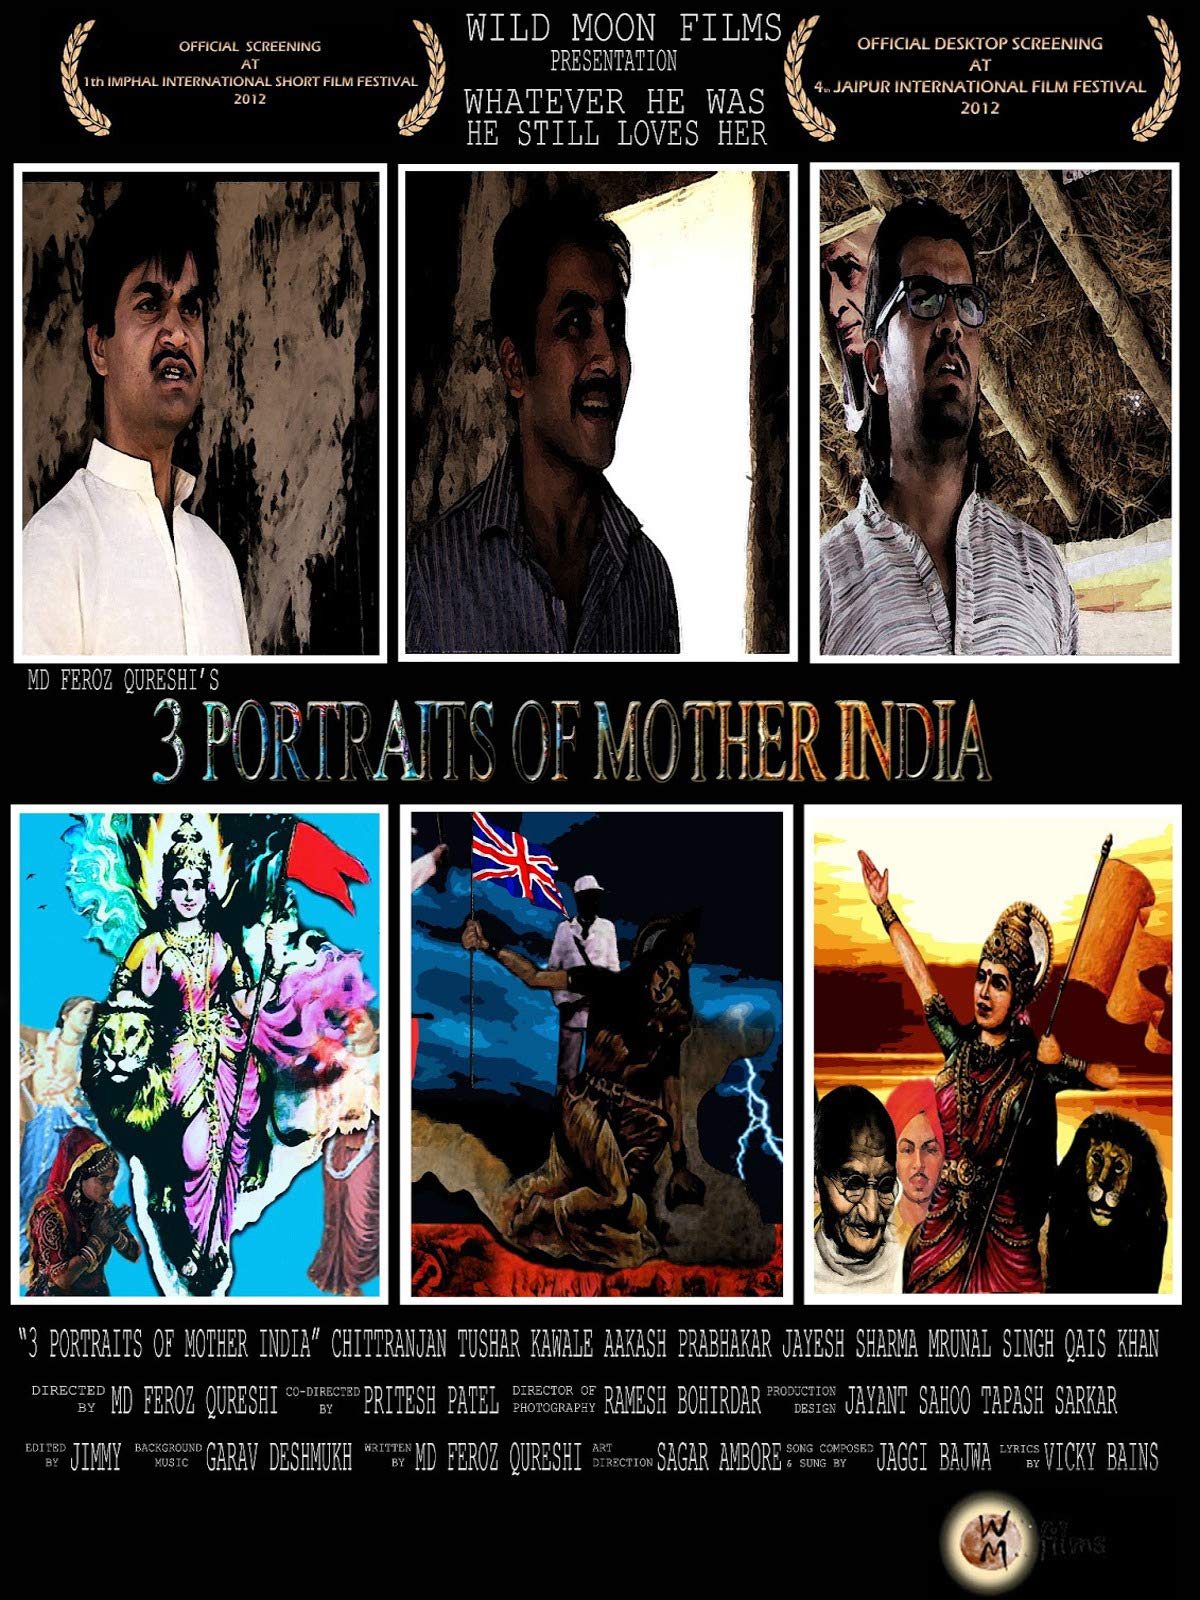 3 Portraits of Mother India